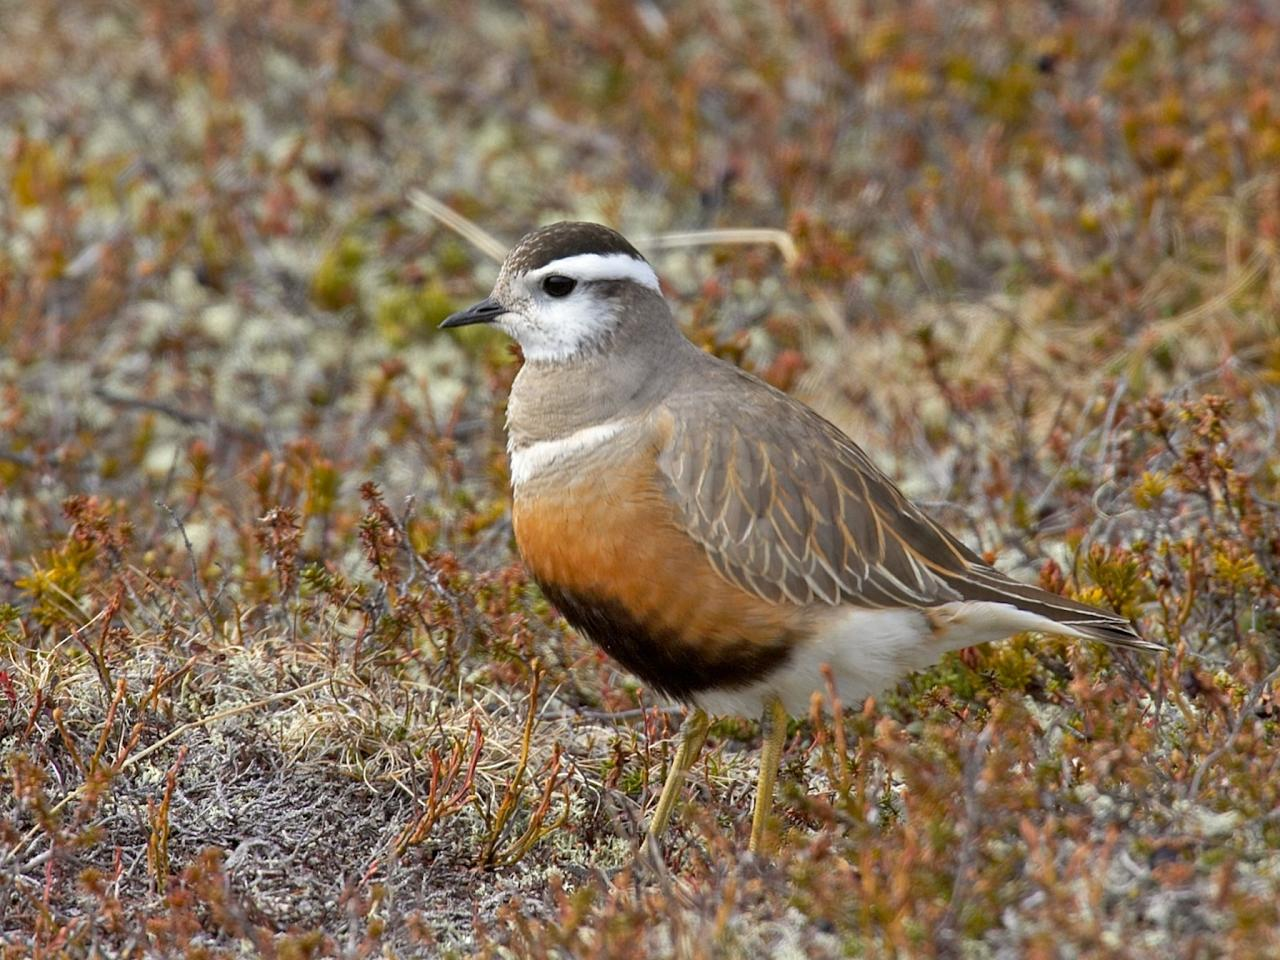 Dotterel, Finland Birding Tour, Finland Nature Tours, Naturalist Journeys, Europe Birding, Norway, Norway Birding Tour